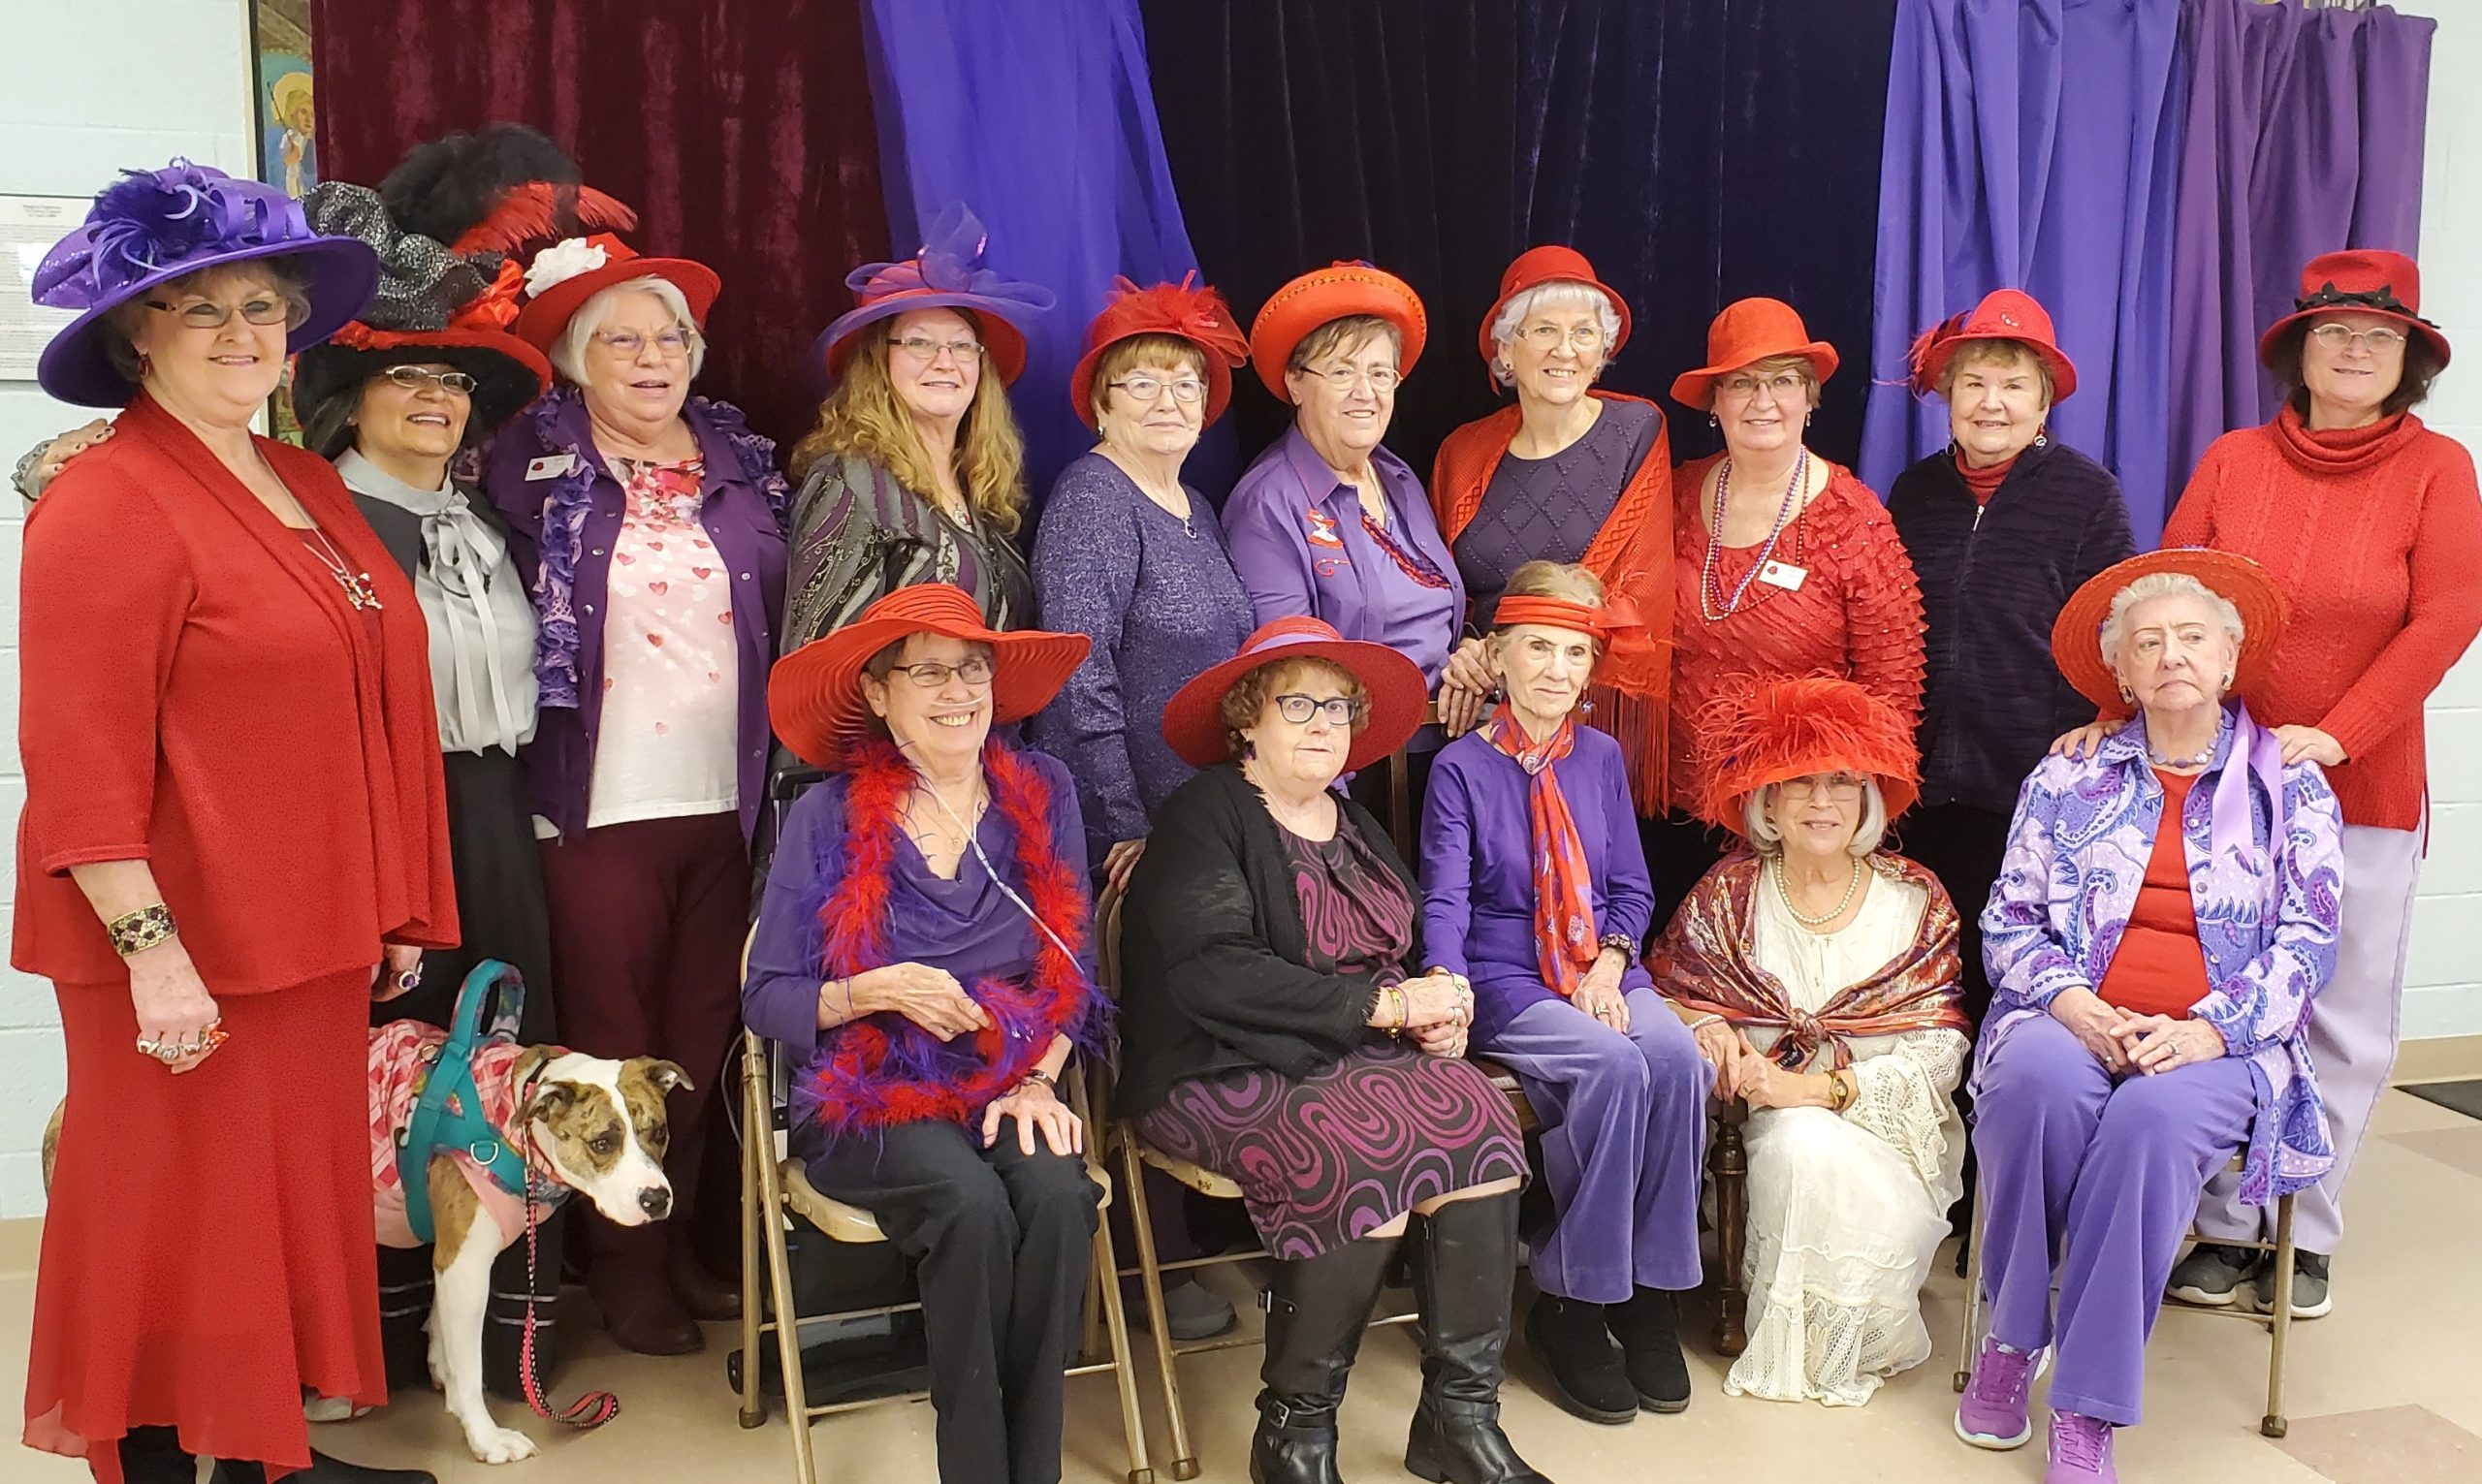 The Dazzling Diva Red Hats Club were the largetst group represented at the FOL annual Victorian Tea